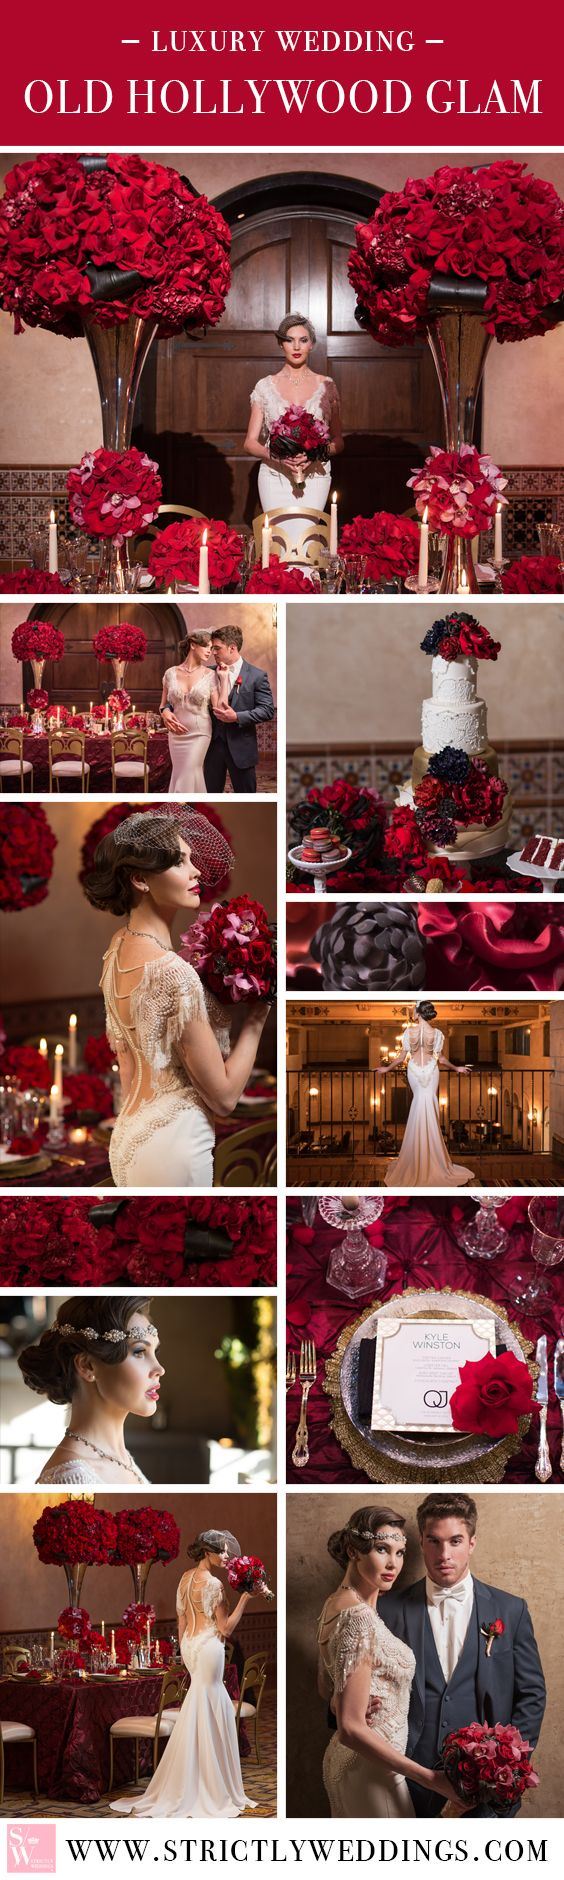 Step back in time with old Hollywood glamour. Dripping in red roses, ornate details and all the glitz and glam of one stylish Galia Lahav gown. #luxurywedding #oldhollywood More